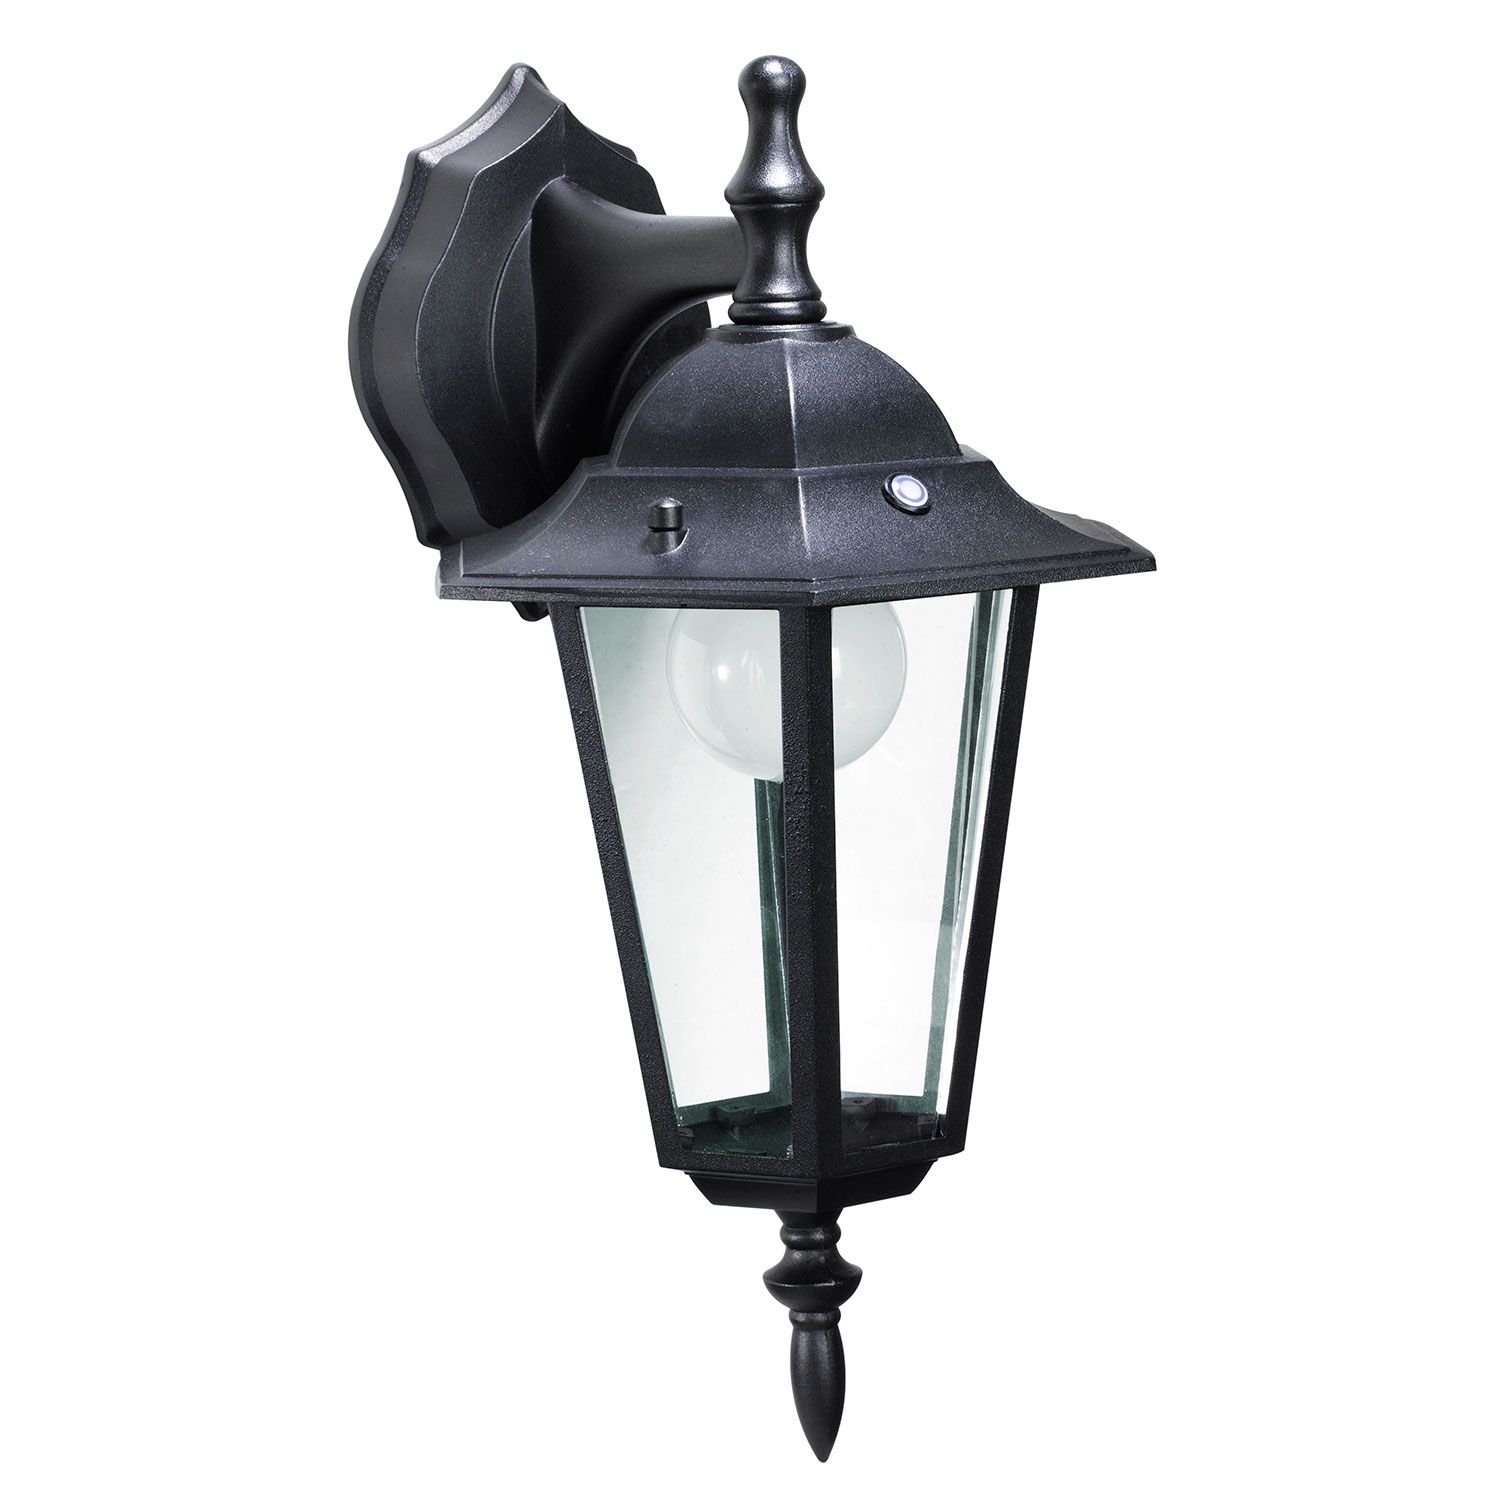 honeywell ss0601 08 led outdoor wall mount lantern light 3000k 400 lumens honeywell store. Black Bedroom Furniture Sets. Home Design Ideas